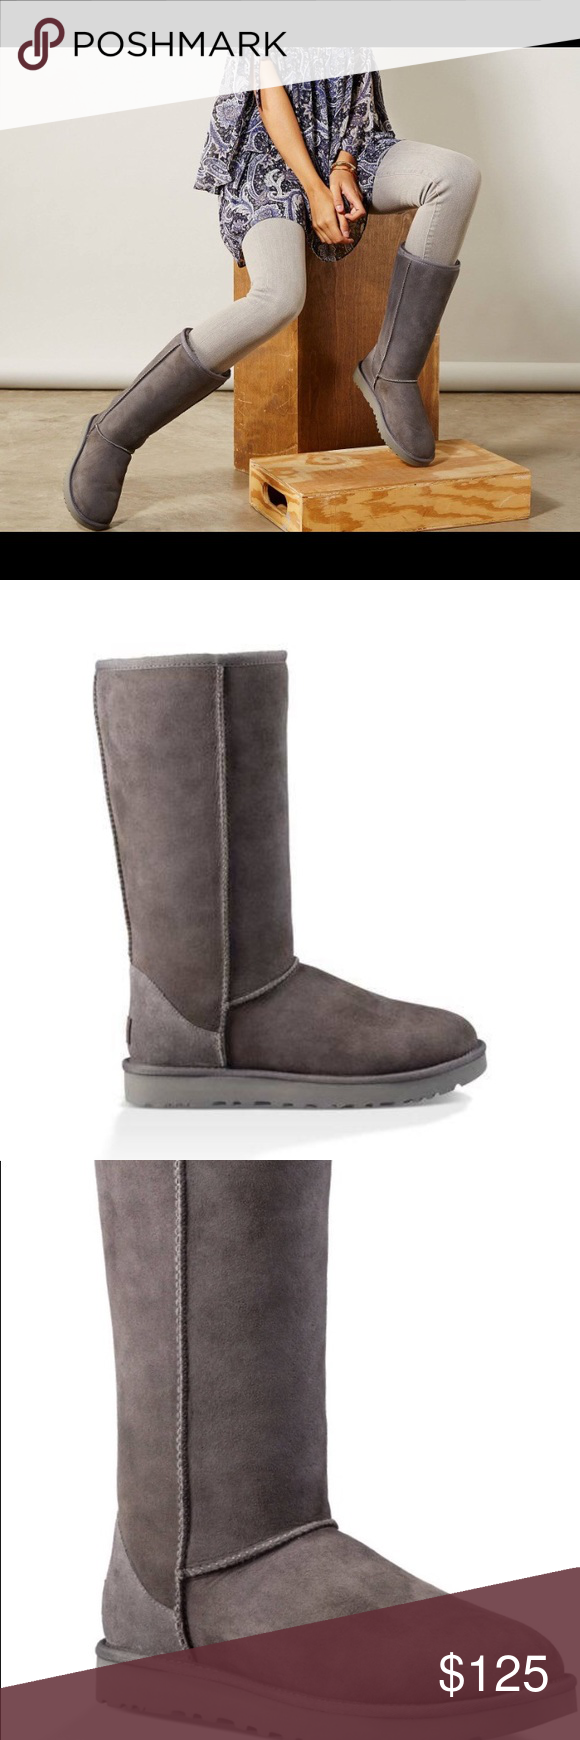 6b8d028976d6 Ugg Women's Classic Tall II Boots Grey NEW Ugg Women's Classic Tall II Boots  new never worn missing shoe box but protected in clear plastic.